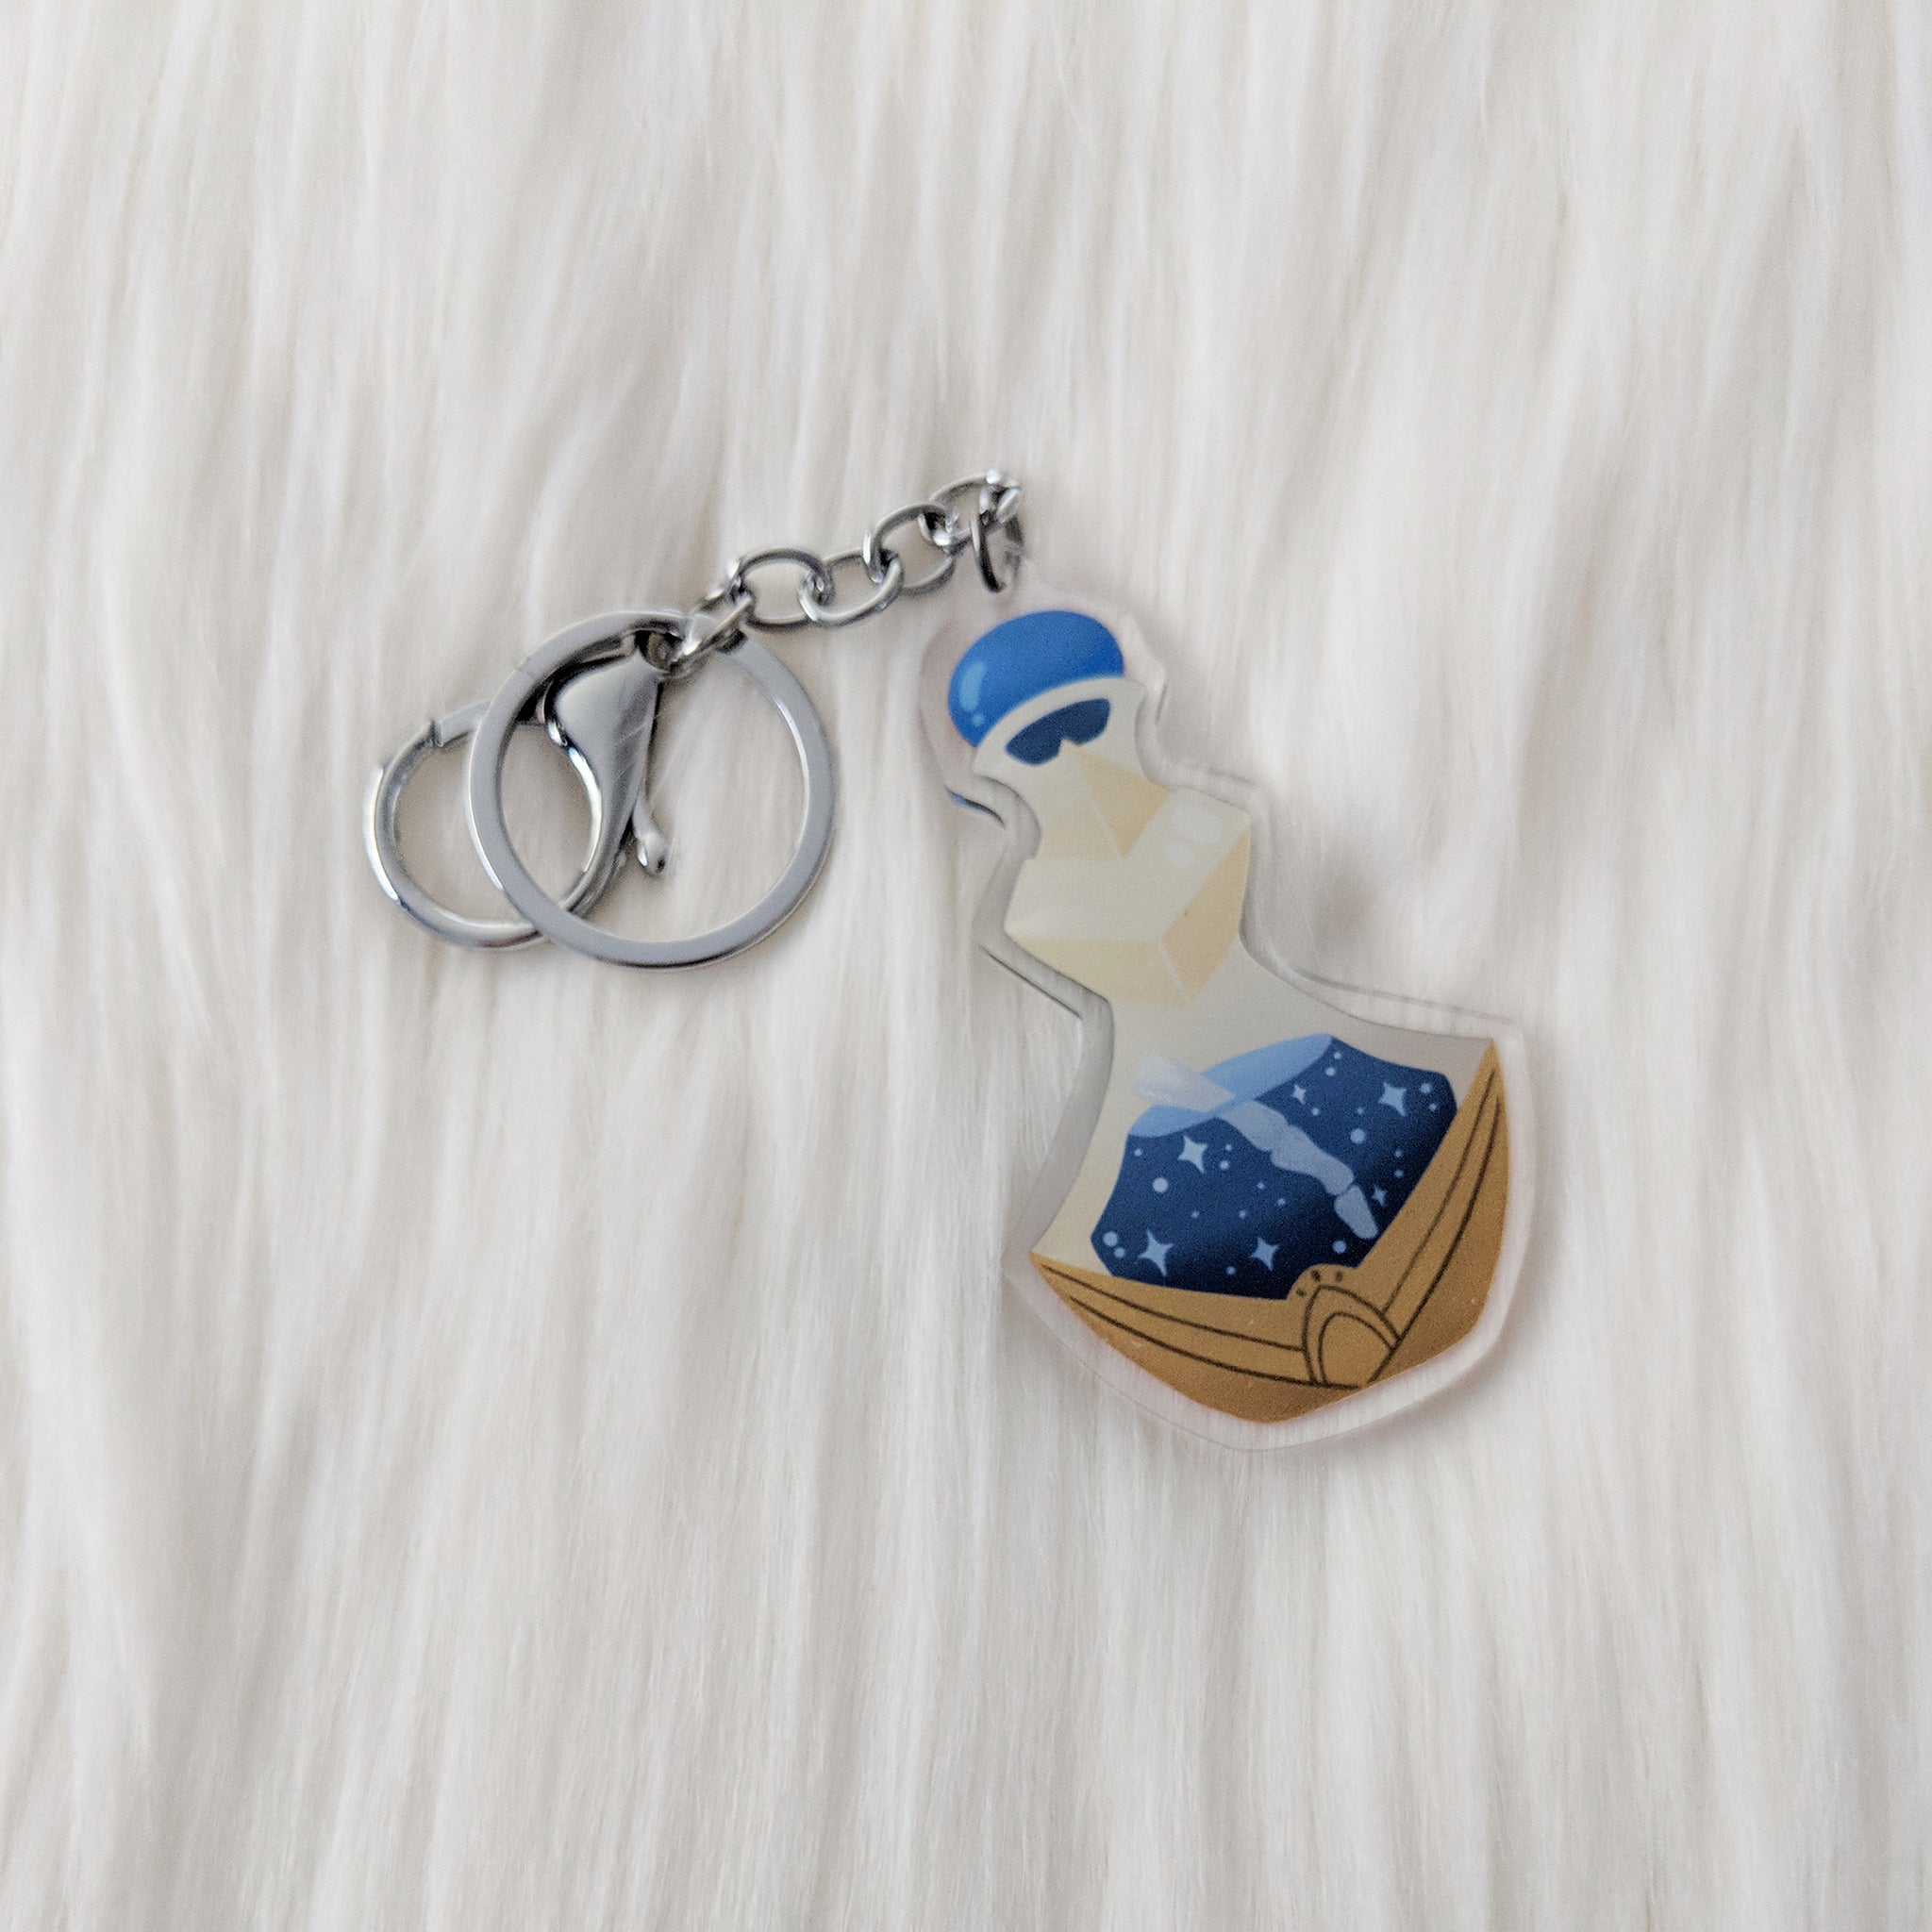 Revival & Death Potion - Acrylic Charm